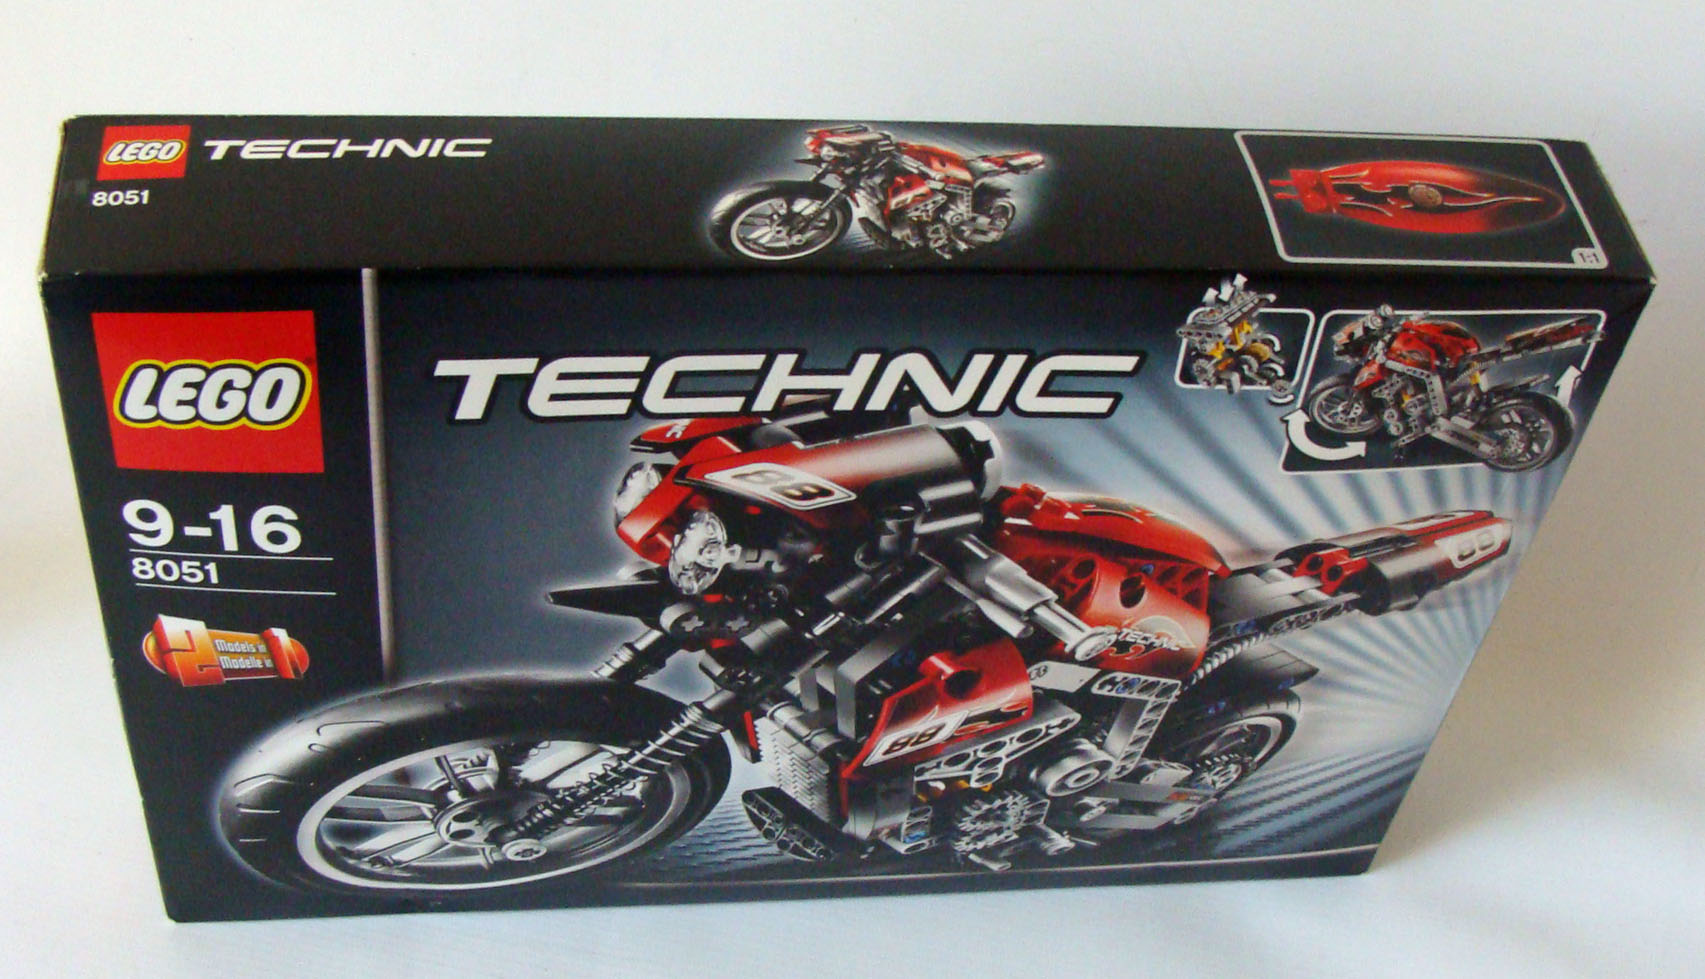 lego technic 8051 motorrad 467 teile 9 16 jahren neu. Black Bedroom Furniture Sets. Home Design Ideas